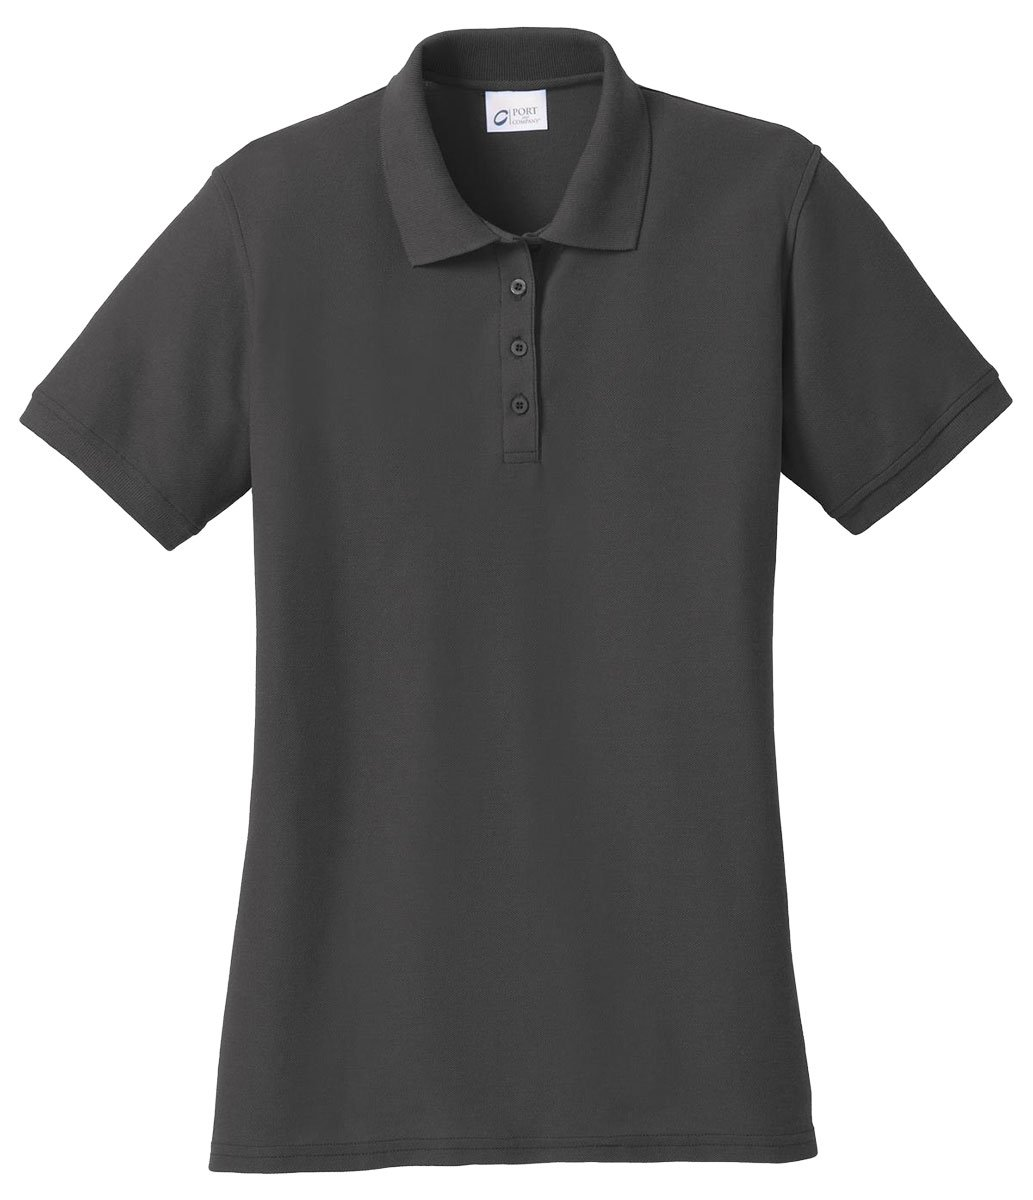 Port & Company Women's 50/50 Pique Polo L Charcoal